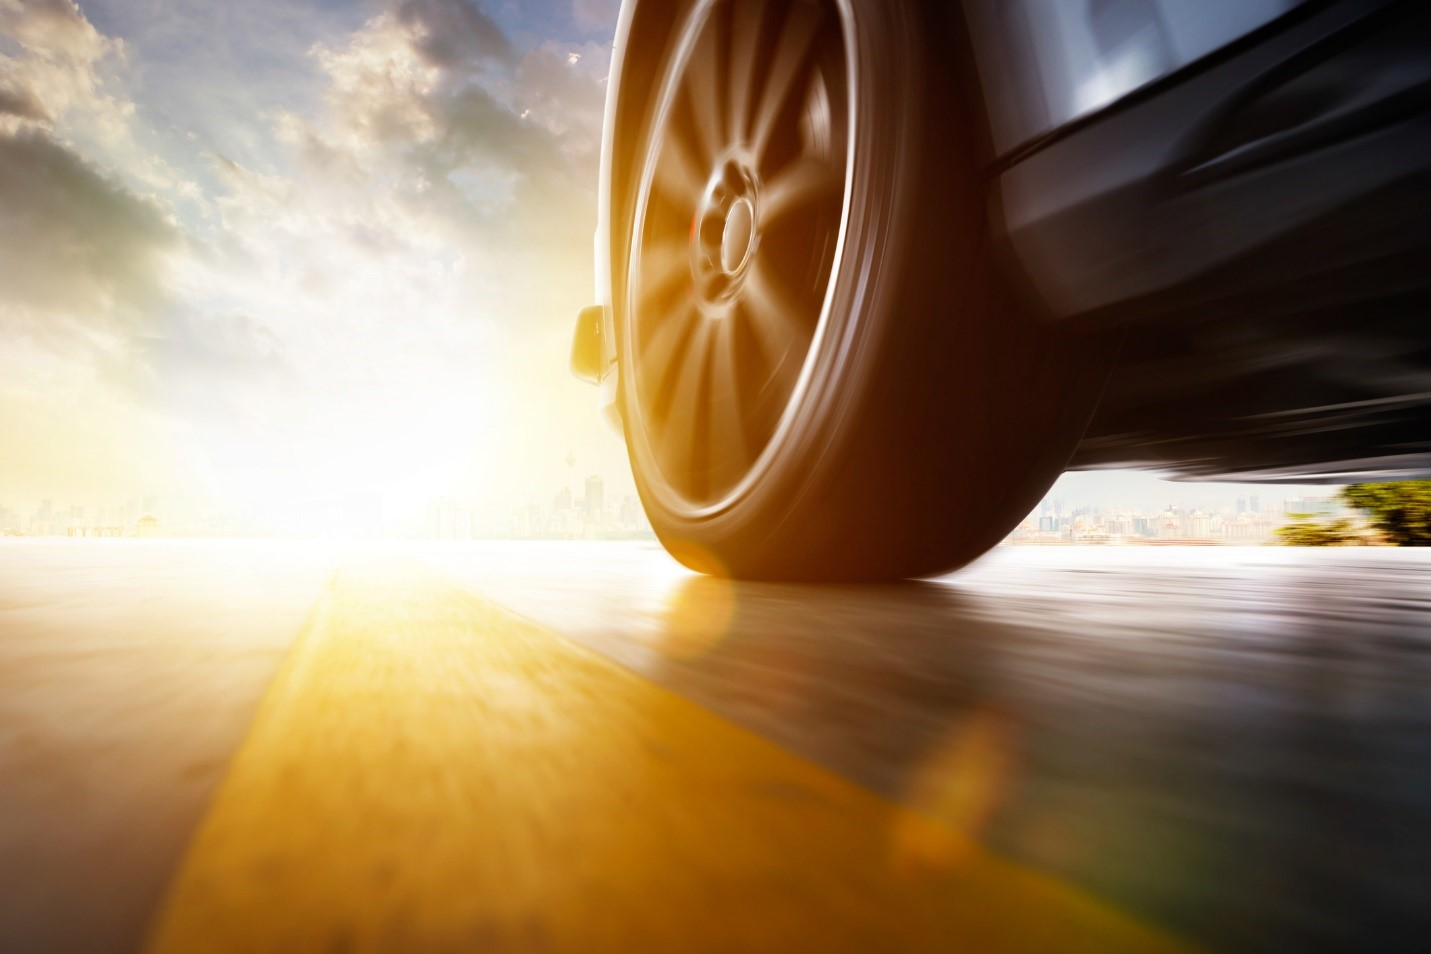 Follow These Five Tips to Get the Most Out of Your Car and Your Auto Insurance on avanteinsurance.com